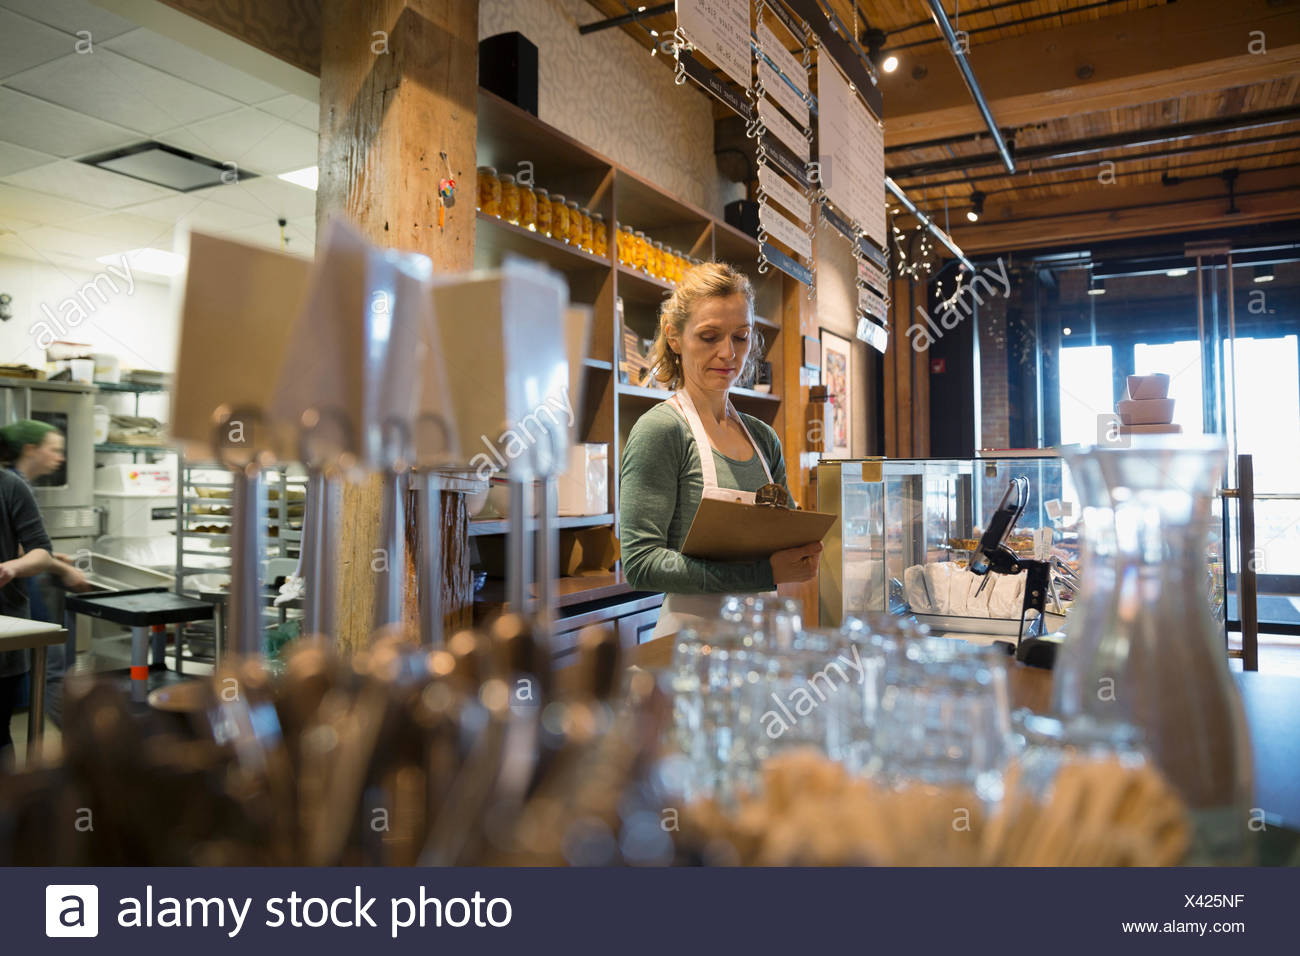 Bakery owner with clipboard behind the counter - Stock Image